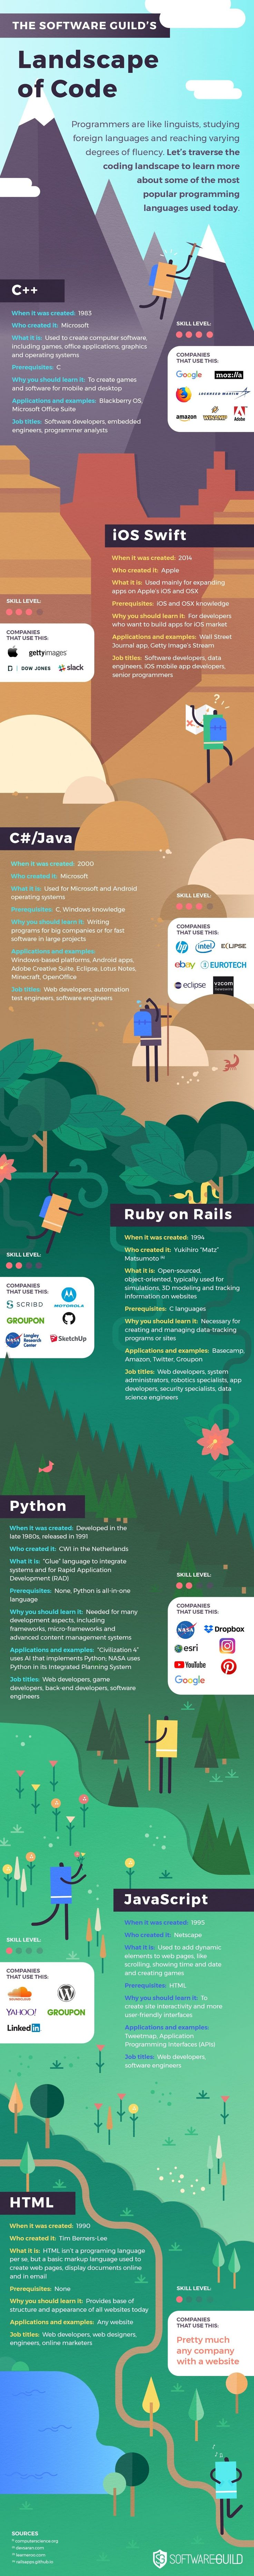 The Landscape of Code - #infographic